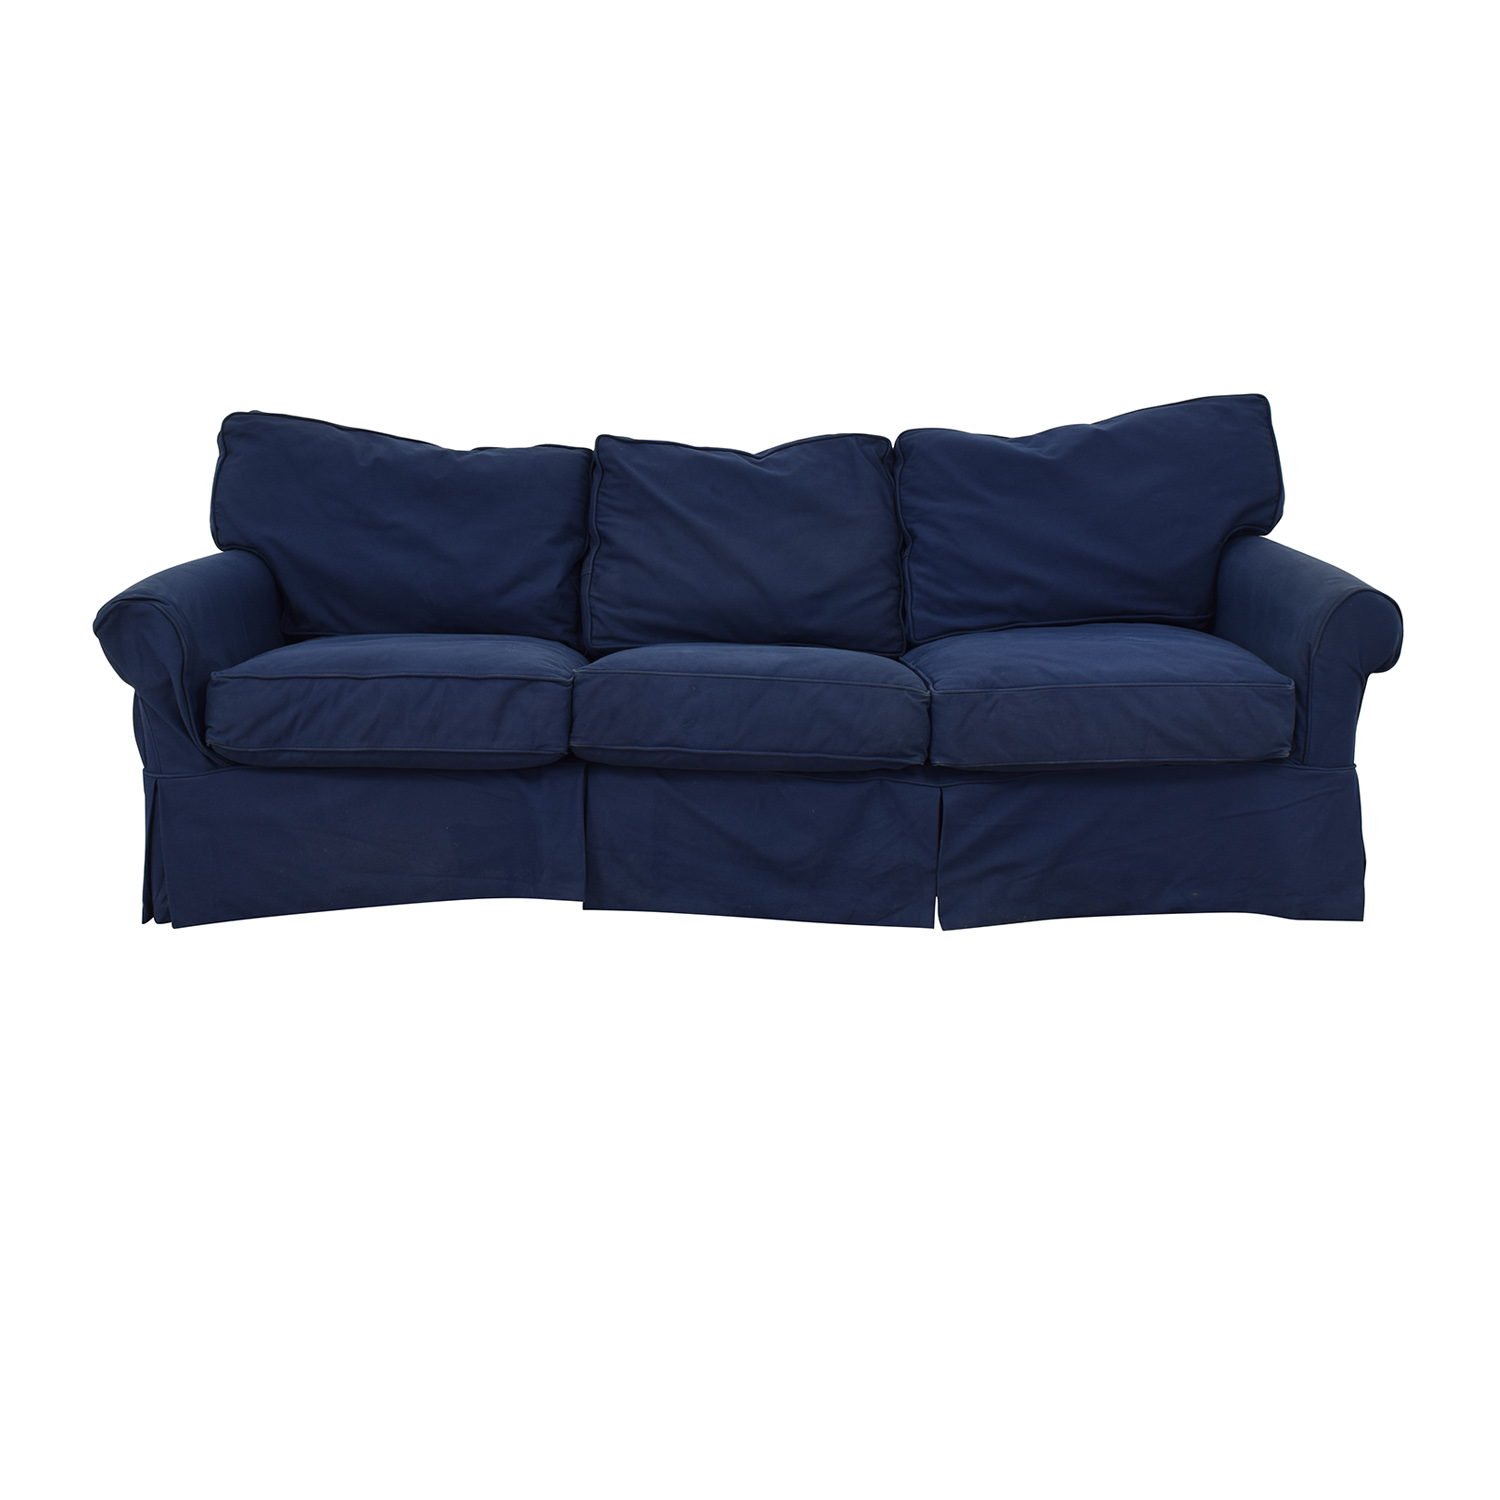 Crate & Barrel Crate & Barrel Sleeper Sofa pa